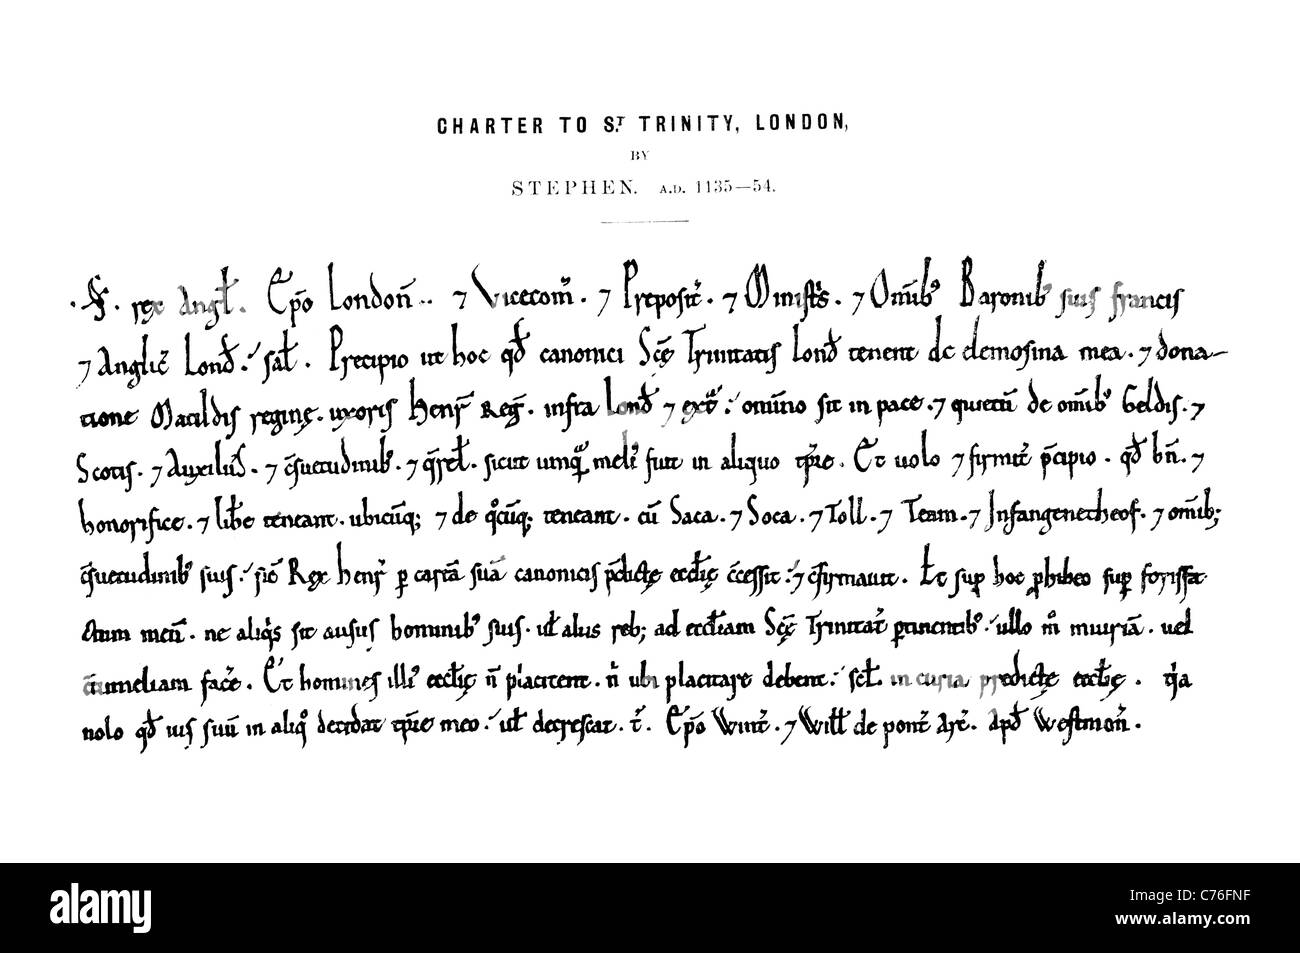 Charter to St Saint Trinity London Letter Document official grant charters historical English language hand writing - Stock Image